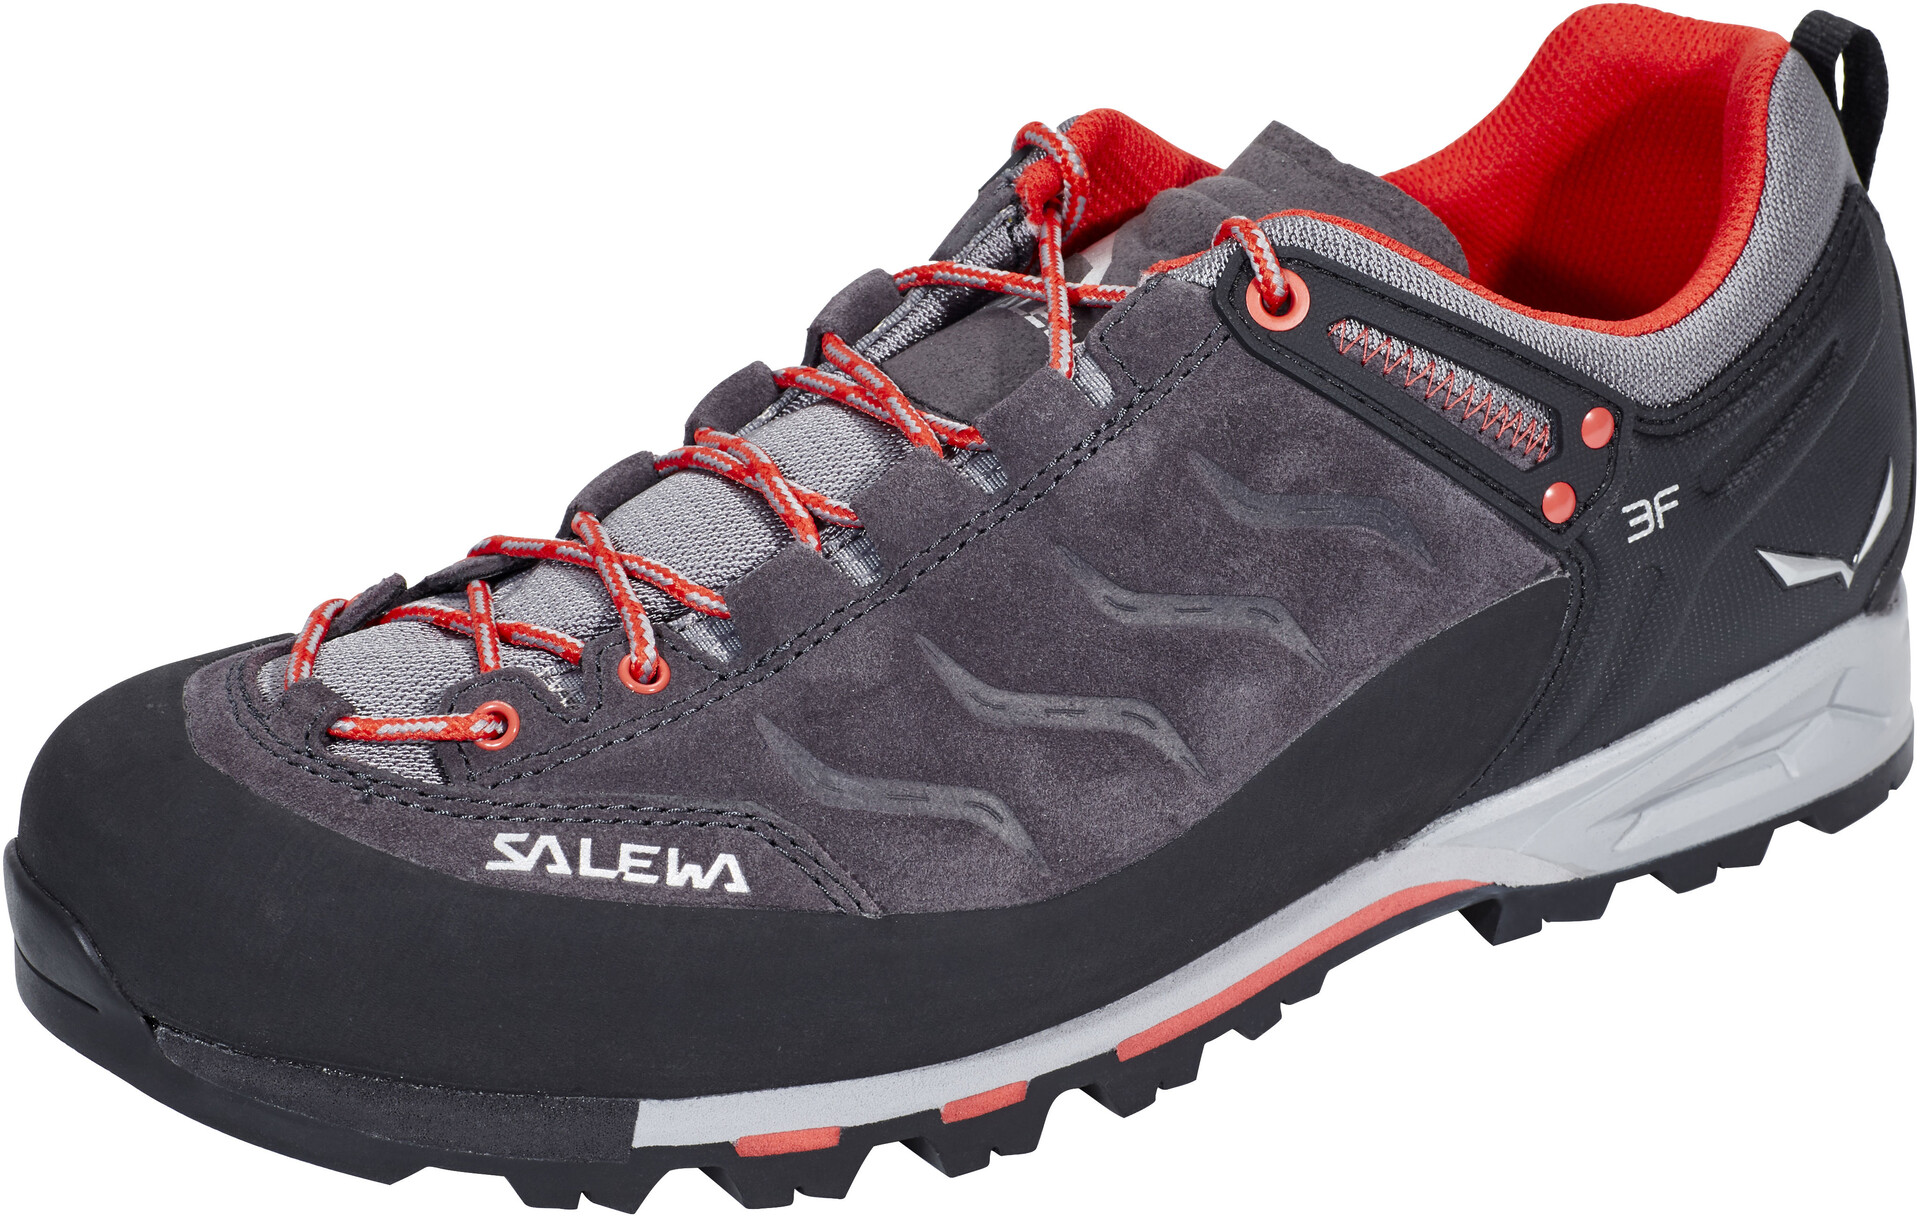 Salewa Klettergurt Größentabelle : Salewa mtn trainer approach shoes men magnet papavero campz